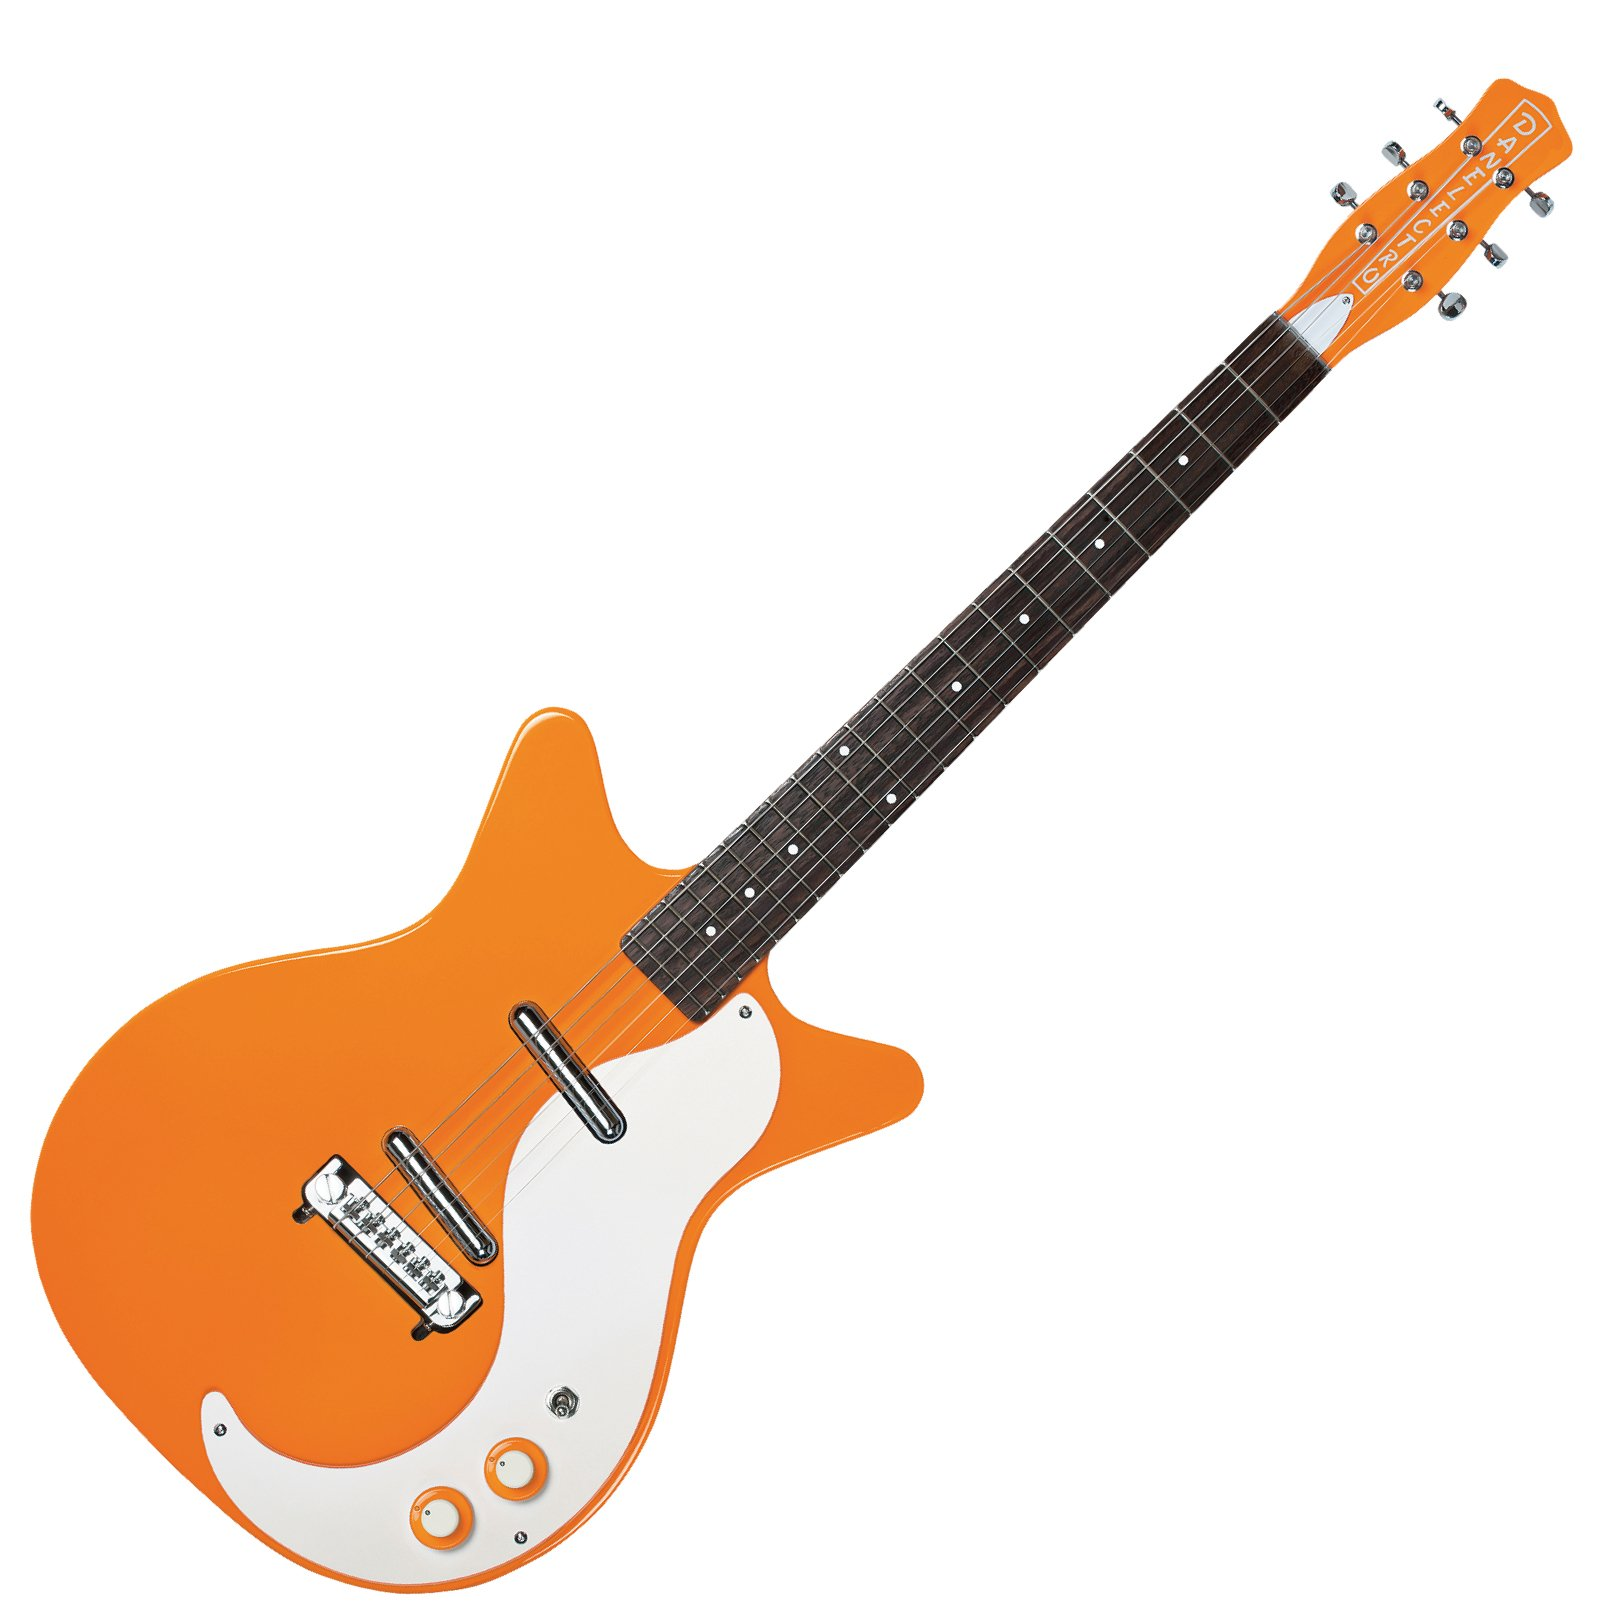 Cheap Danelectro 59 Modified New Old Stock Electric Guitar Orange-adelic Black Friday & Cyber Monday 2019